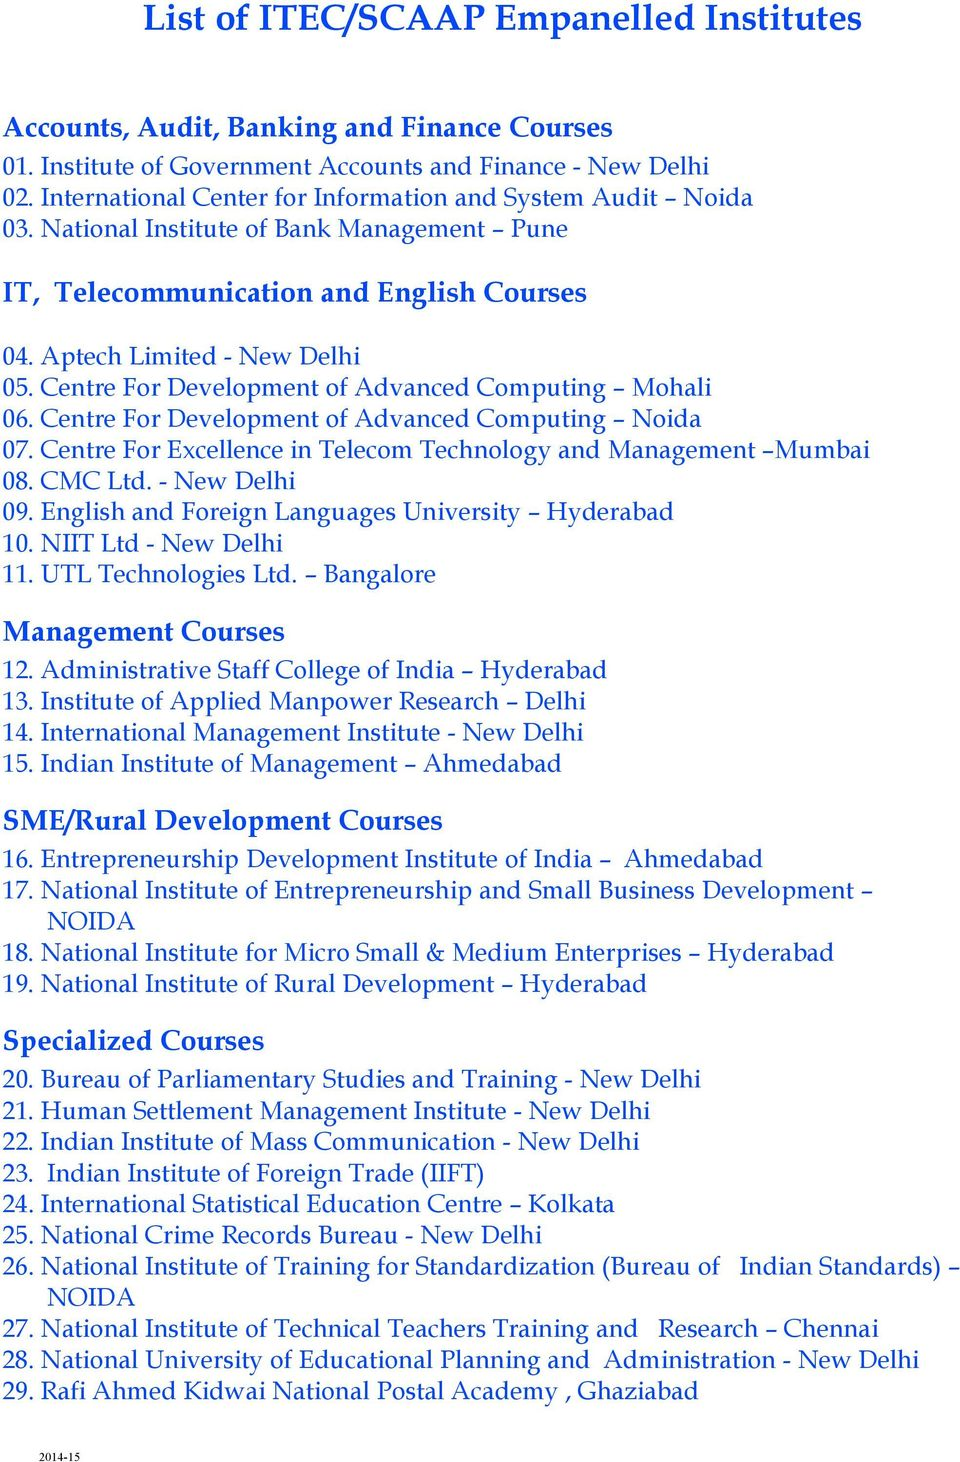 Centre For Development of Advanced Computing Mohali 06. Centre For Development of Advanced Computing Noida 07. Centre For Excellence in Telecom Technology and Management Mumbai 08. CMC Ltd.